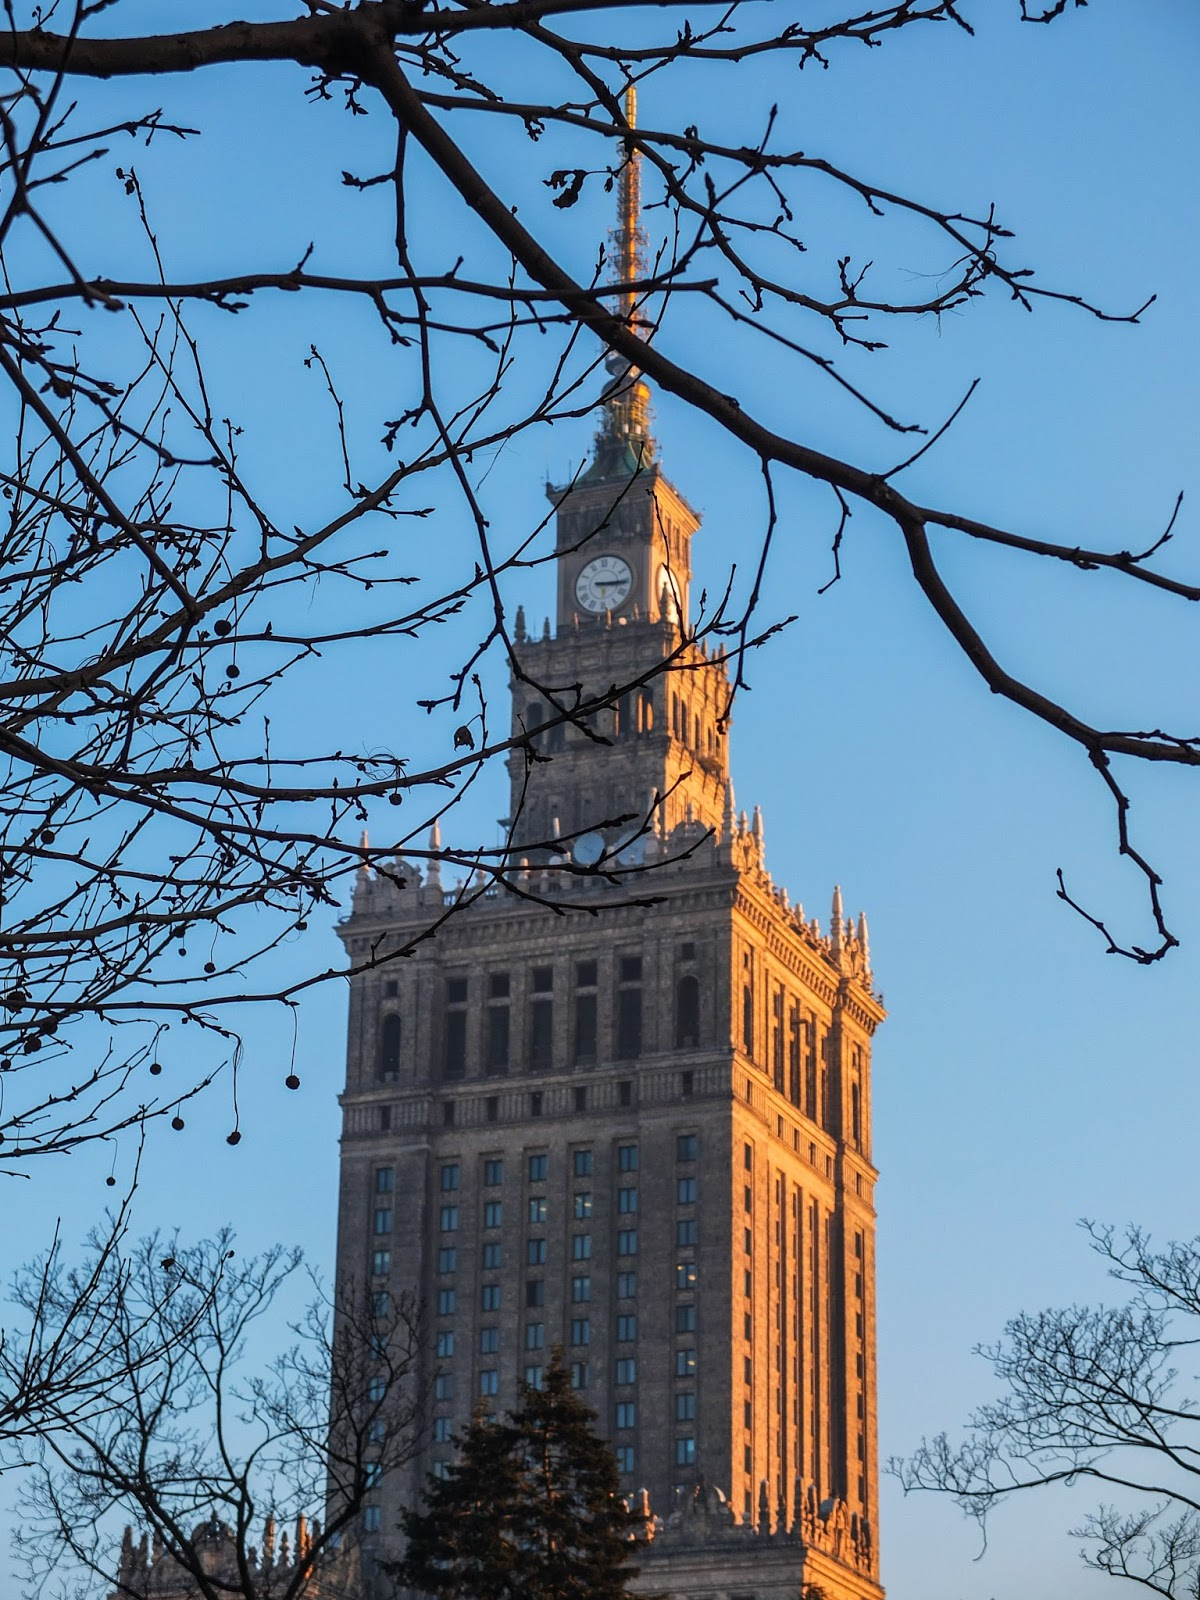 View of the Palace of Culture tower taken through tree branches at sunset.